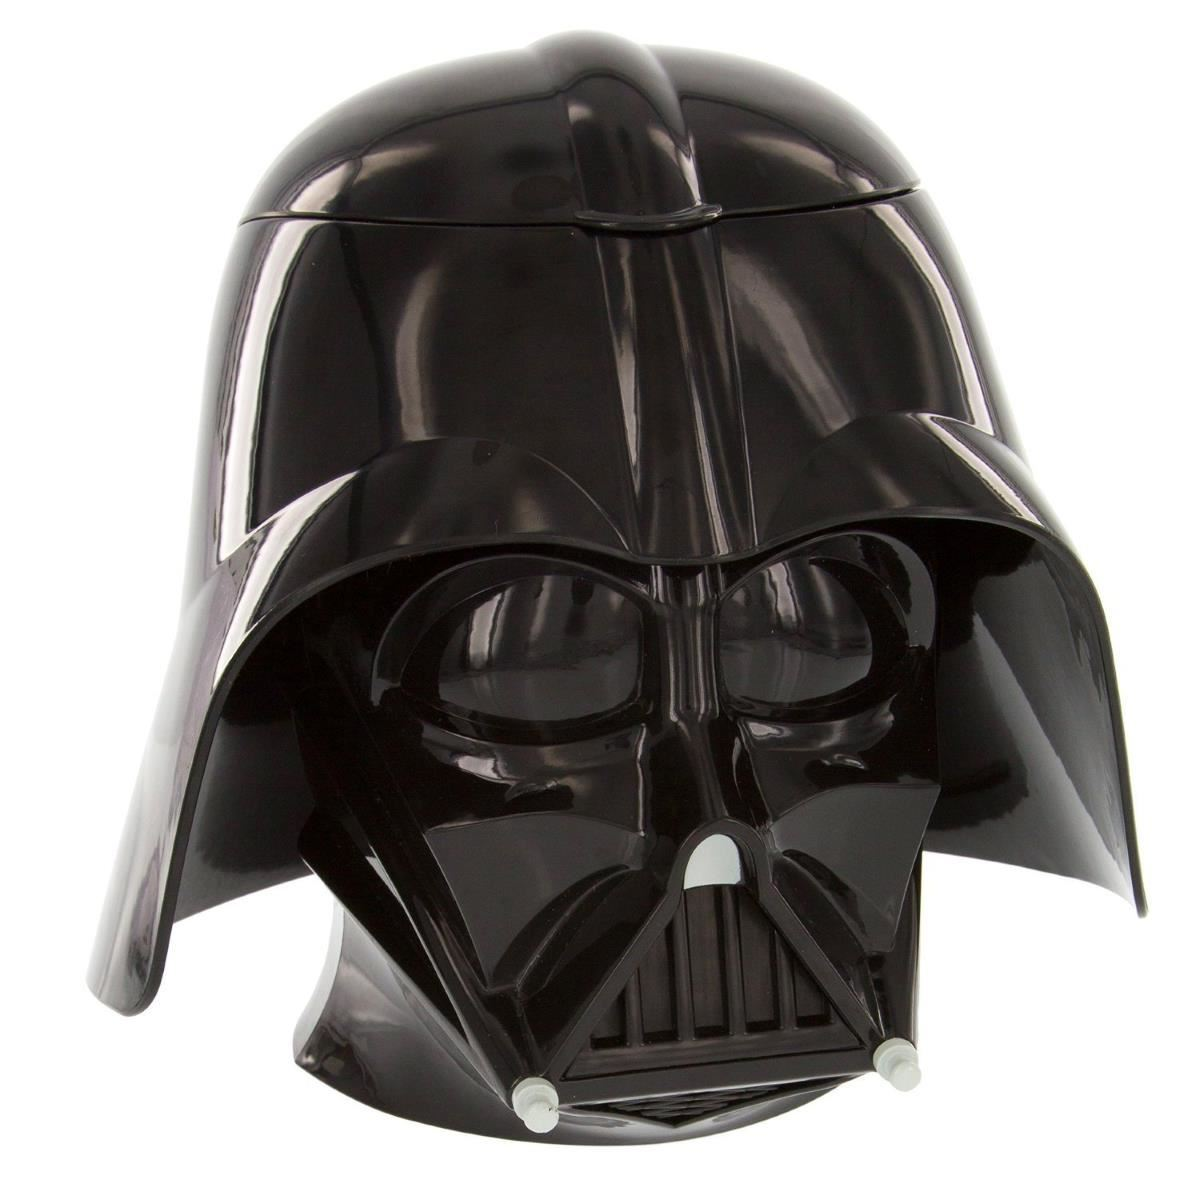 Star Wars Cookie Jars Star Wars Darth Vader Helmet Talking Cookie Jar With